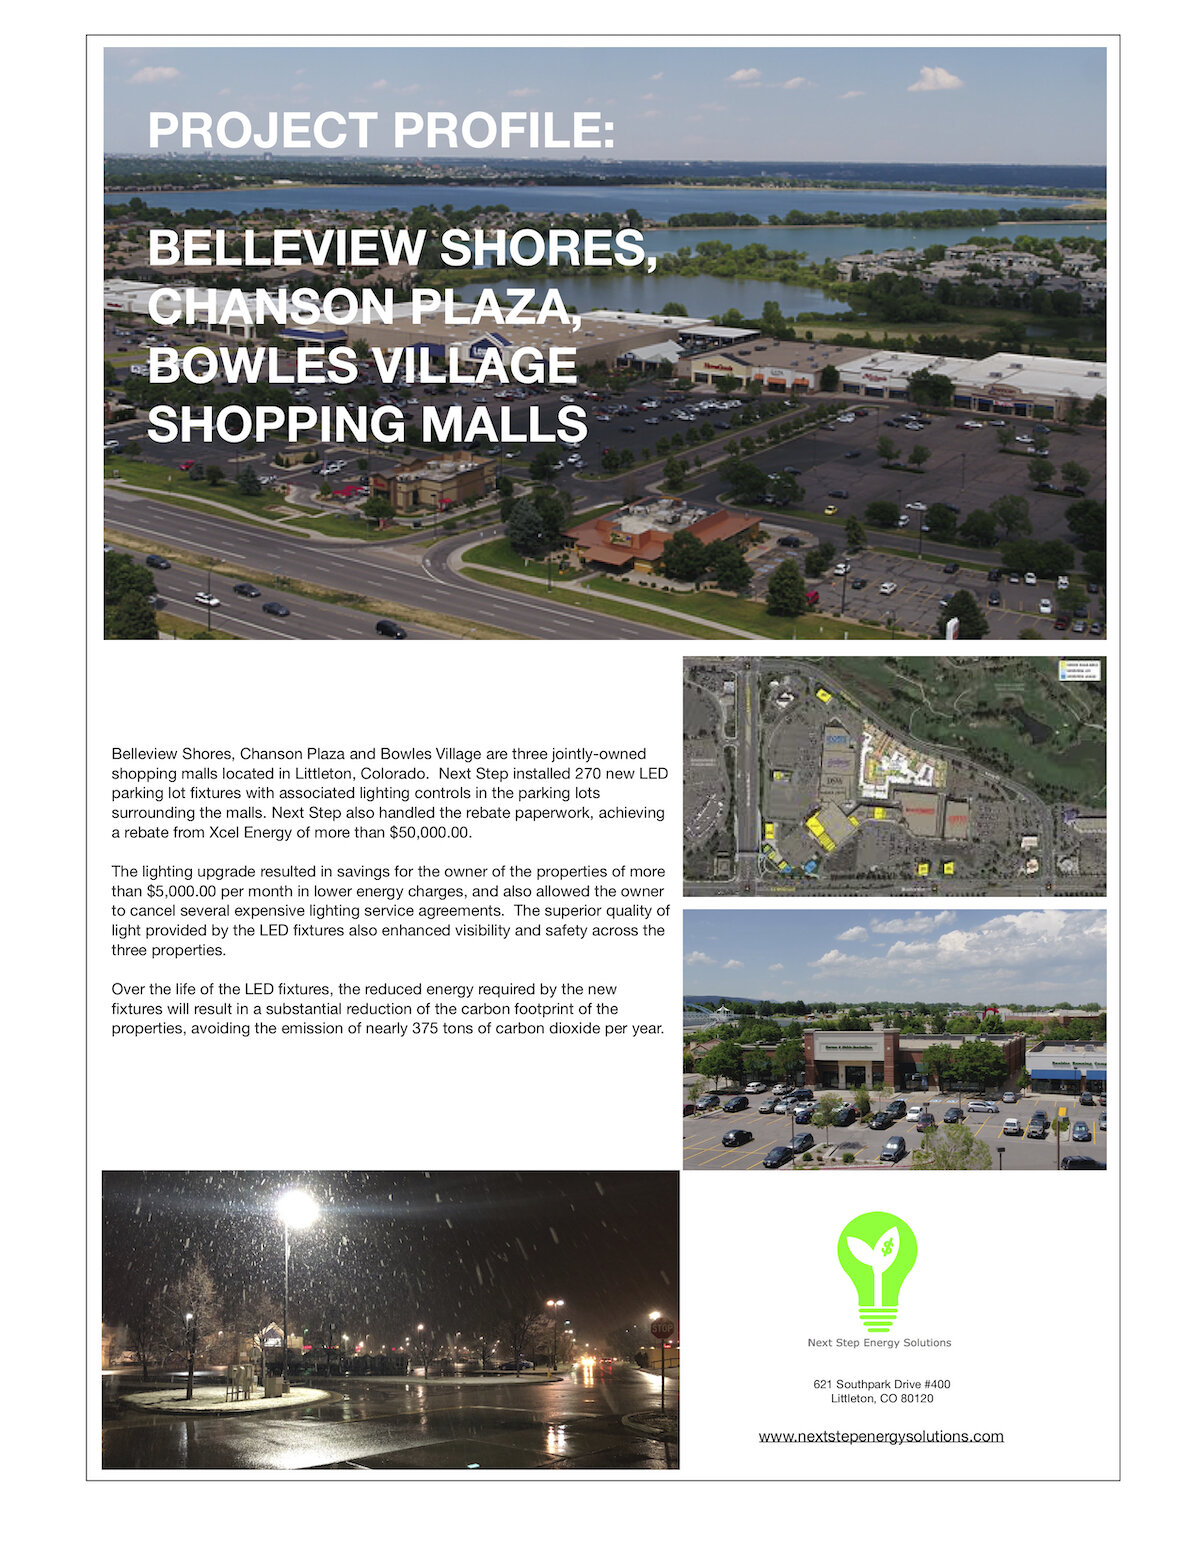 Project Profile Belleview Etc. Malls.jpg